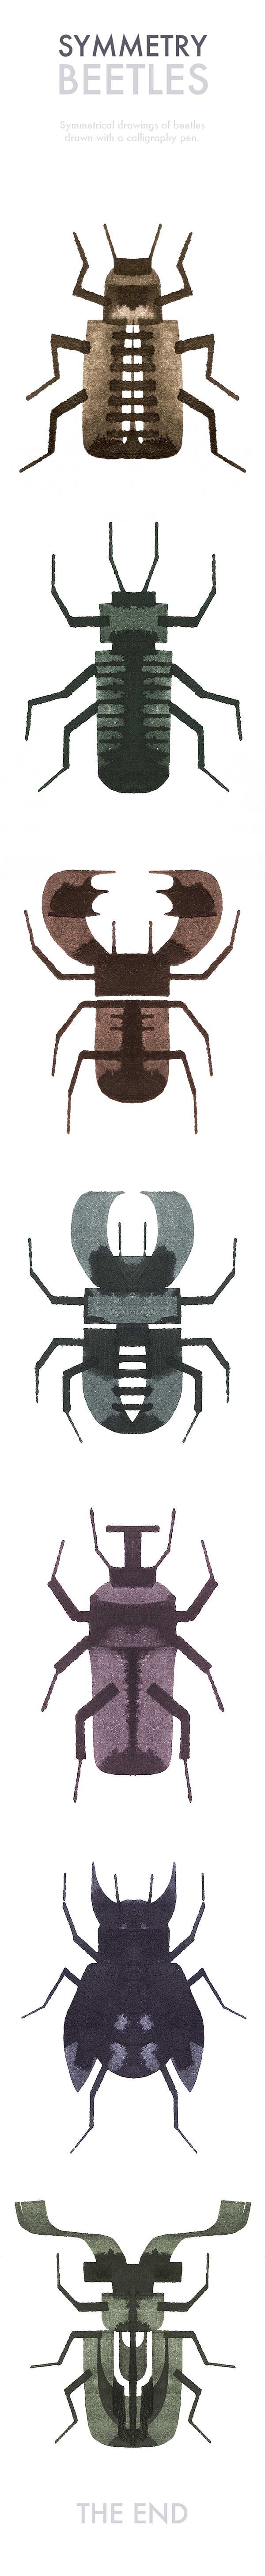 Symmetry Beetles by Andrew Fox, via Behance